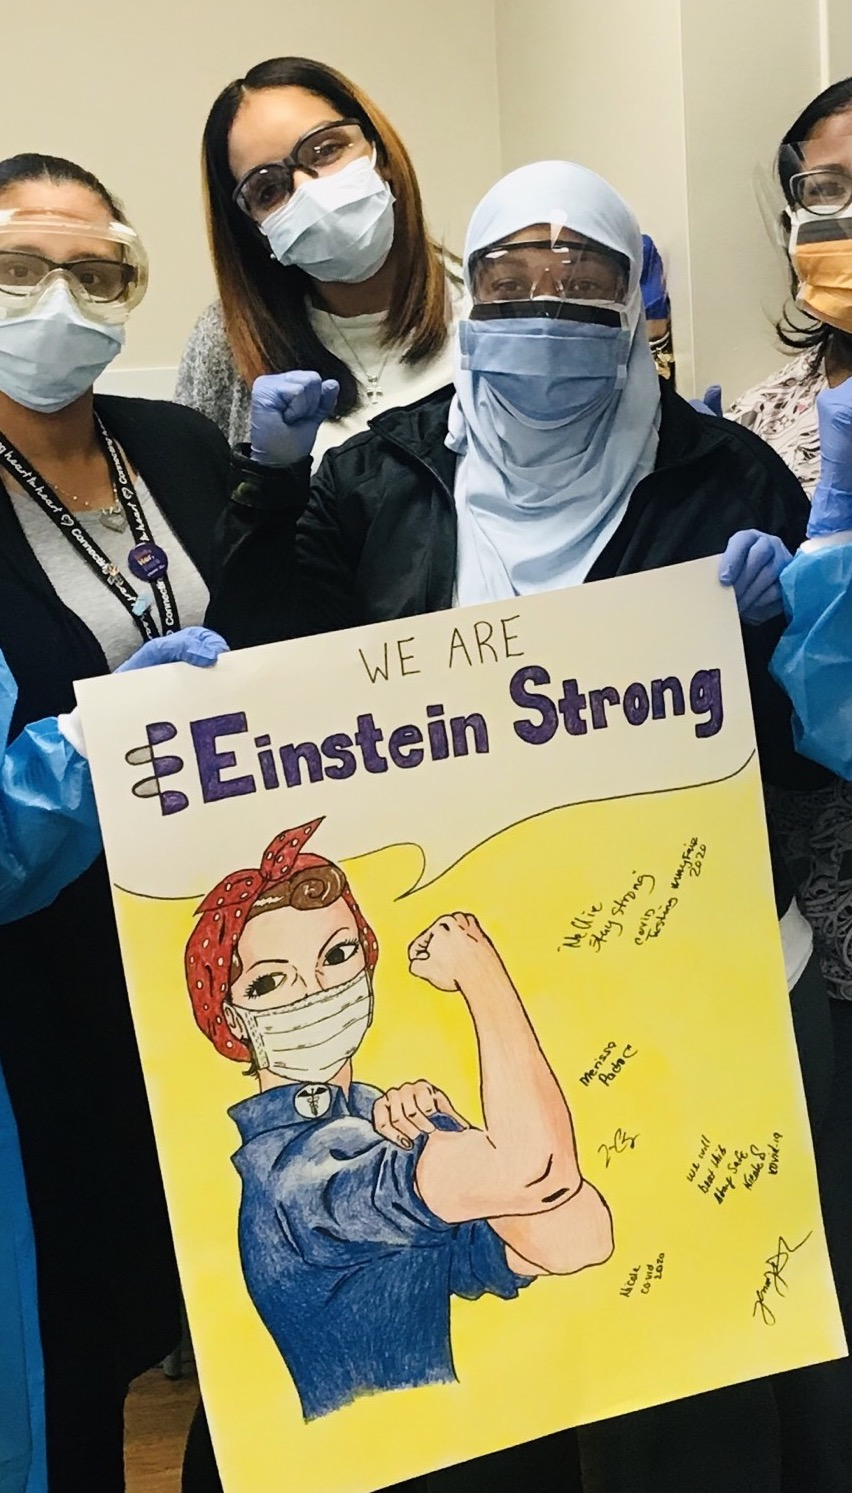 hospital workers in face masks holding a sign that says Einstein Strong